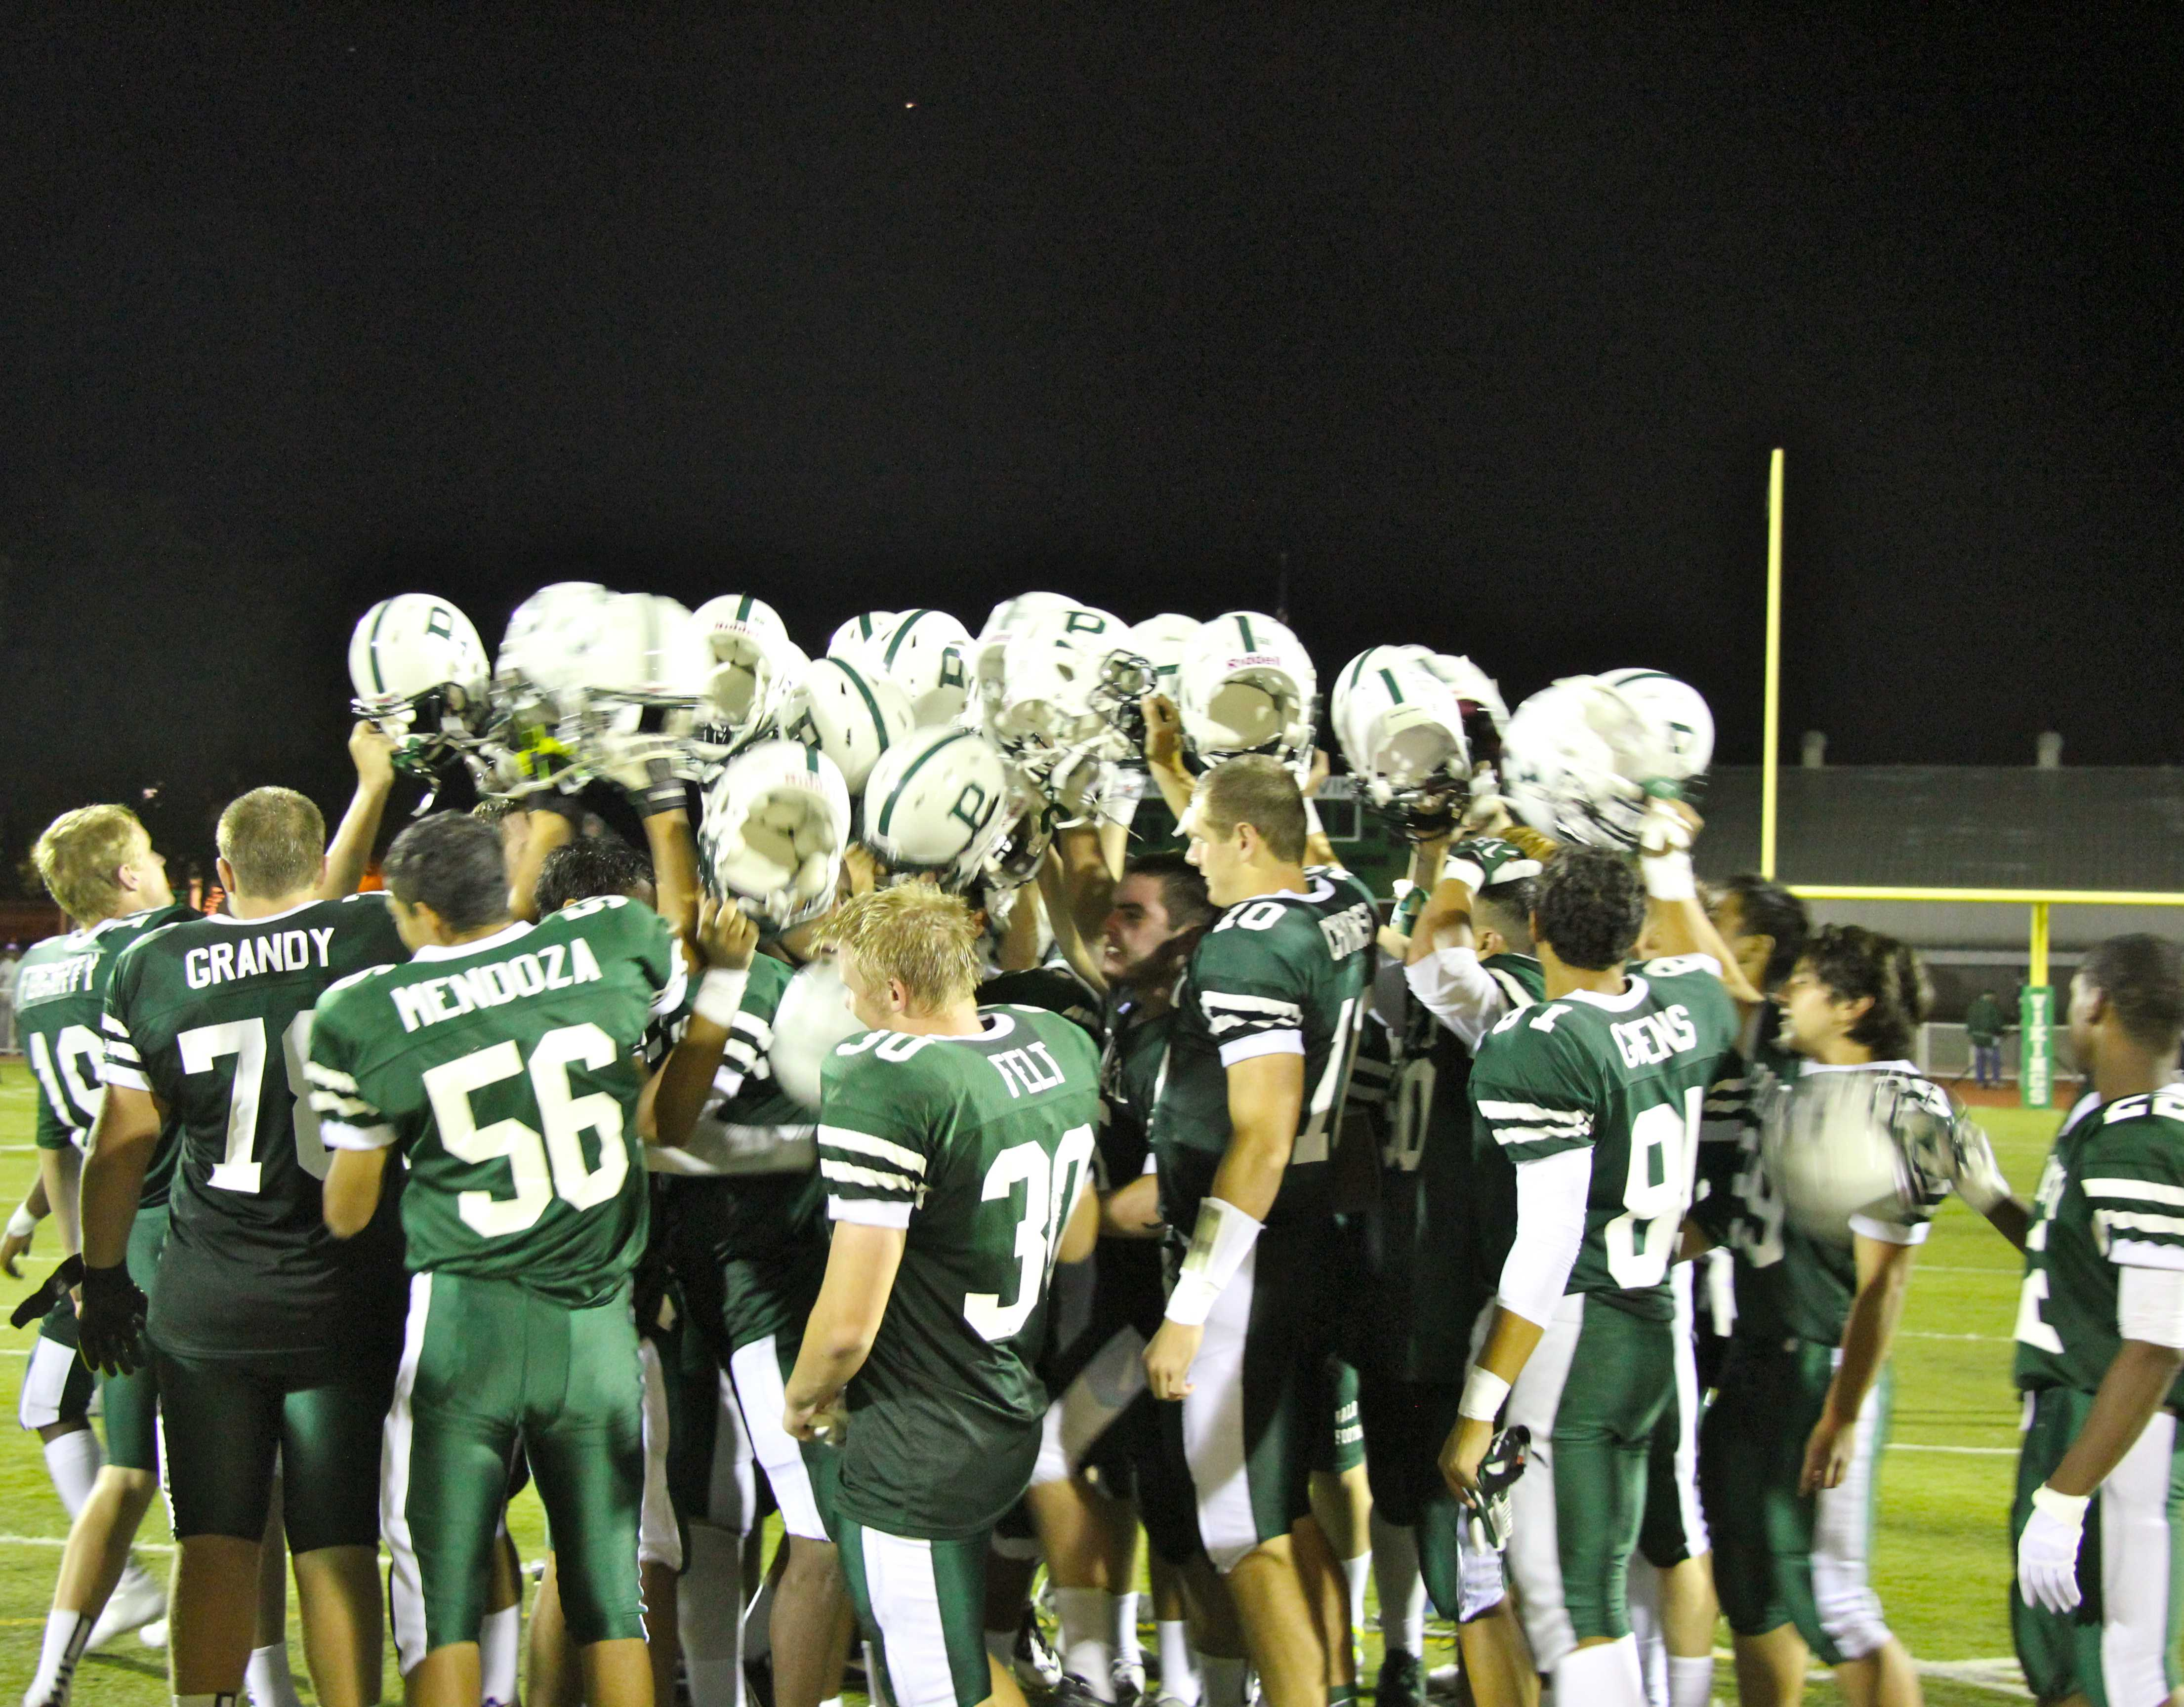 The Vikings meet in the middle of the field after defeating San Benito by a score of 28 to 7.Photo by Scott Andrews